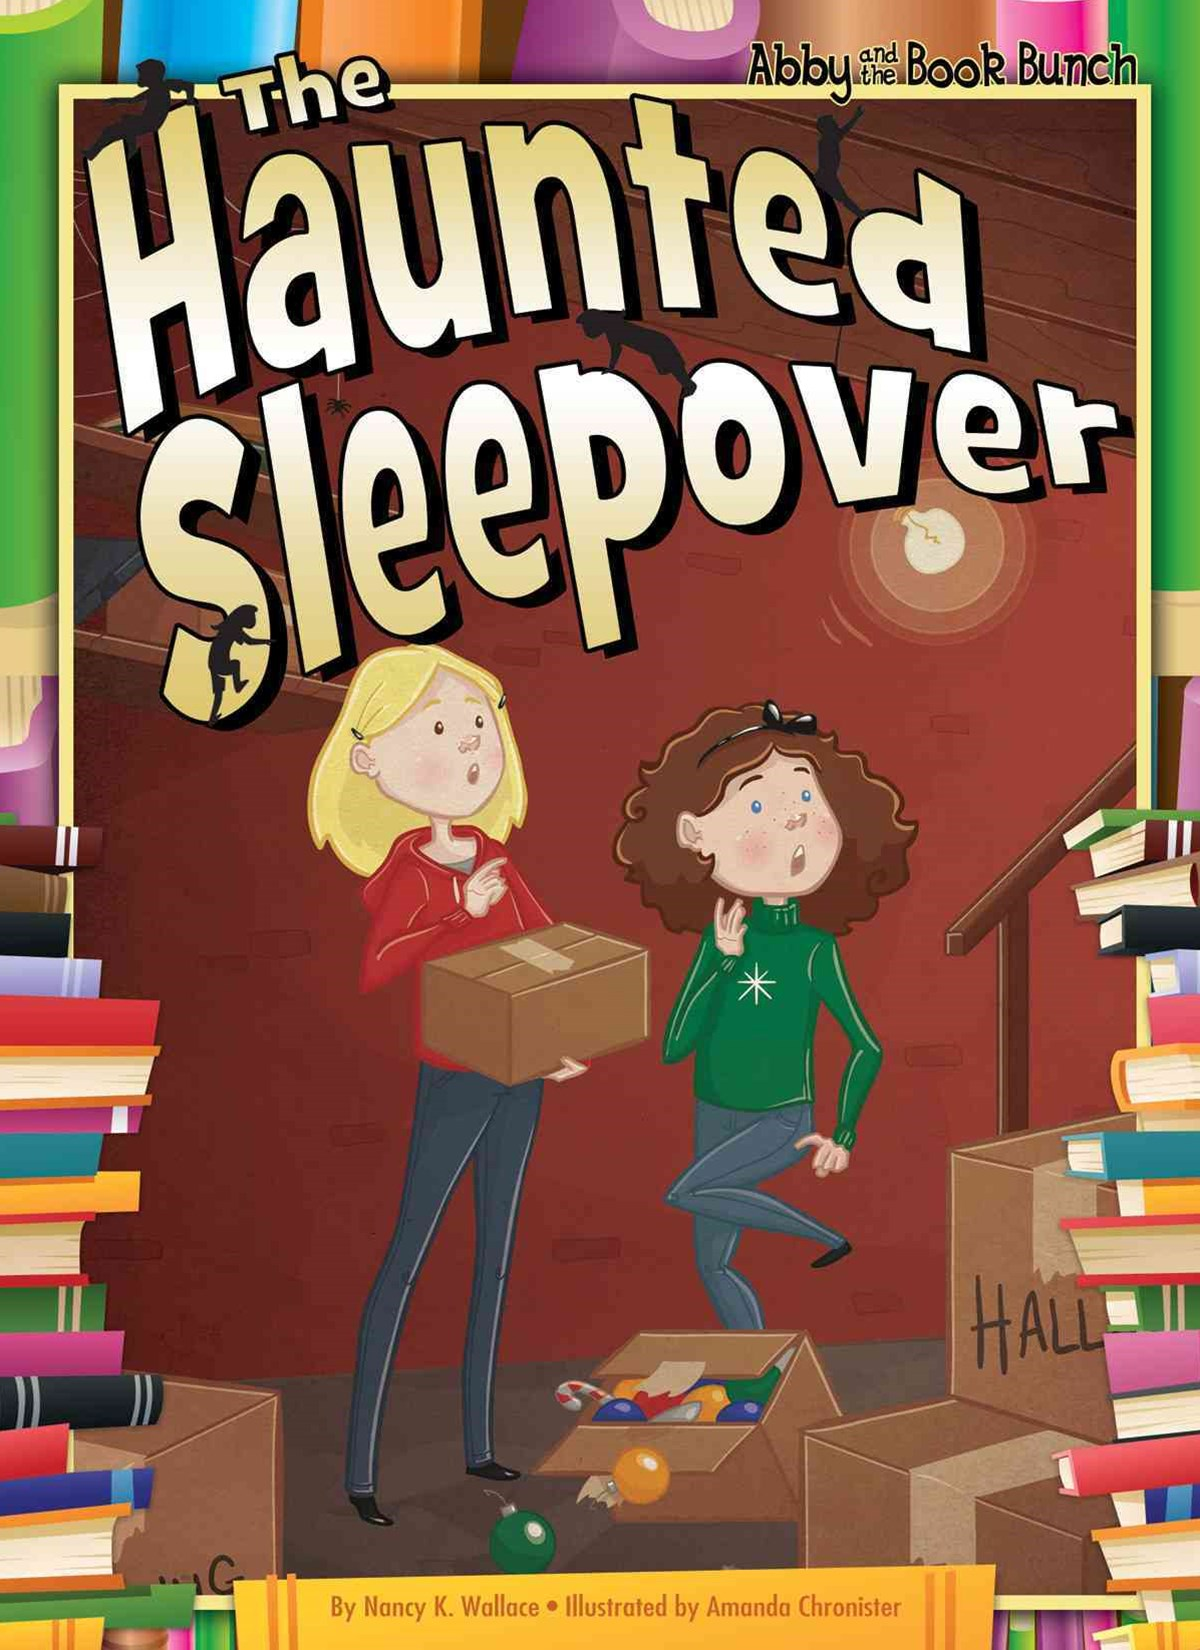 The Haunted Sleepover